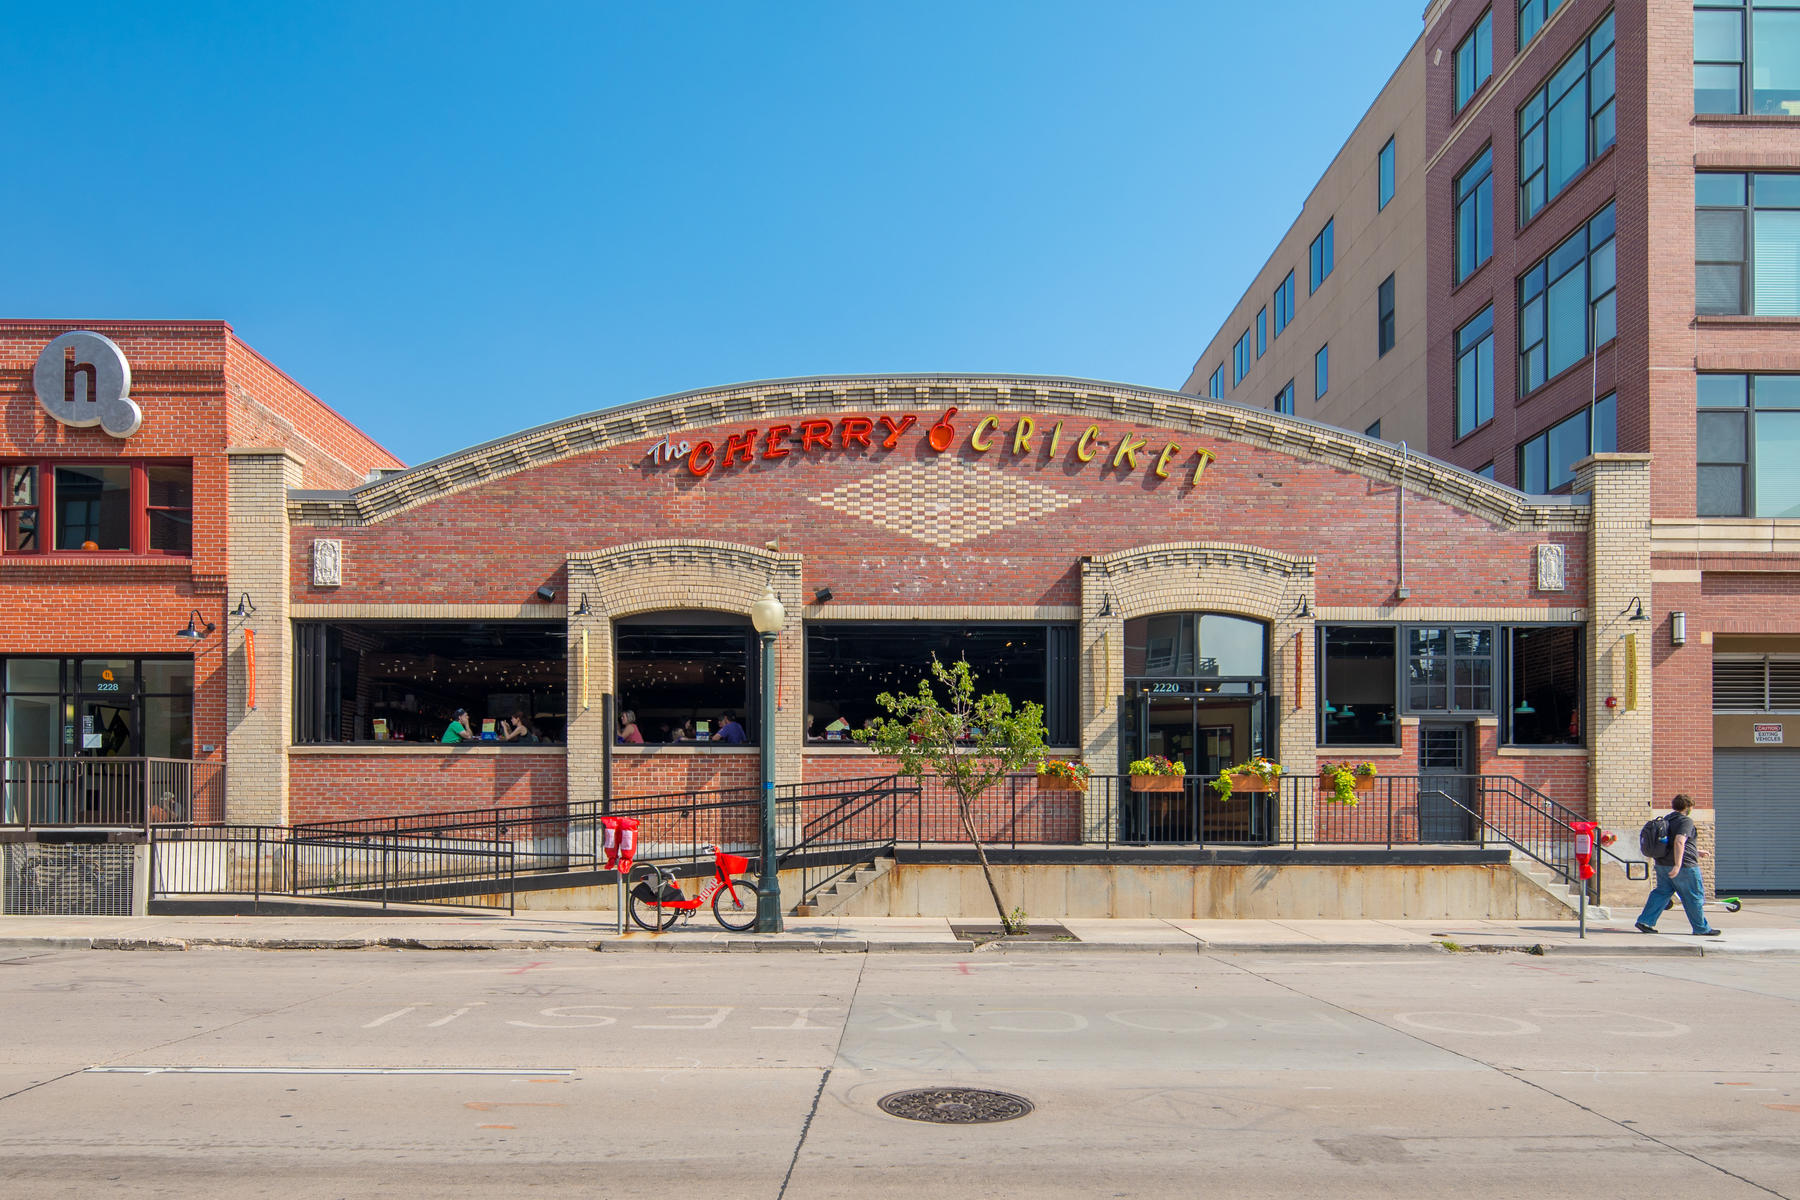 Additional photo for property listing at QUINTESSENTIAL LOFT LIVING IN BALLPARK 2261 Blake St #2C Denver, Colorado 80205 United States